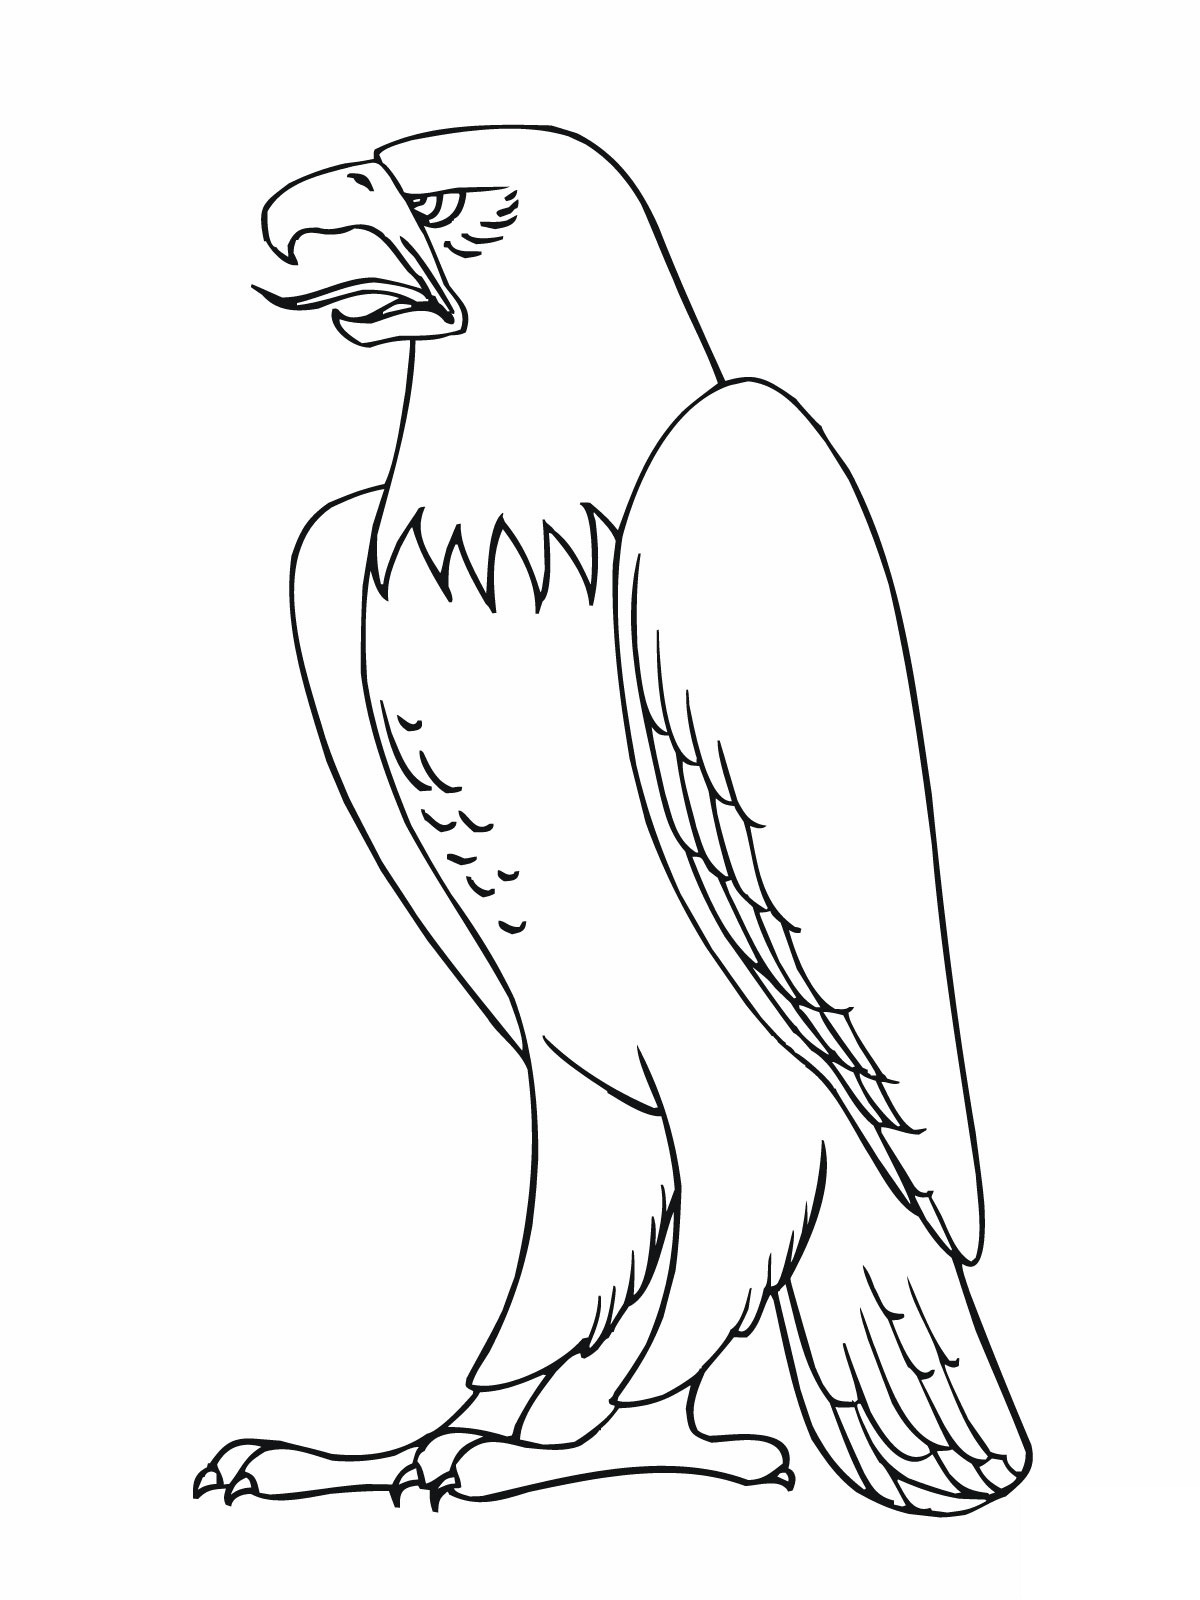 coloring pages of eagles - photo#9